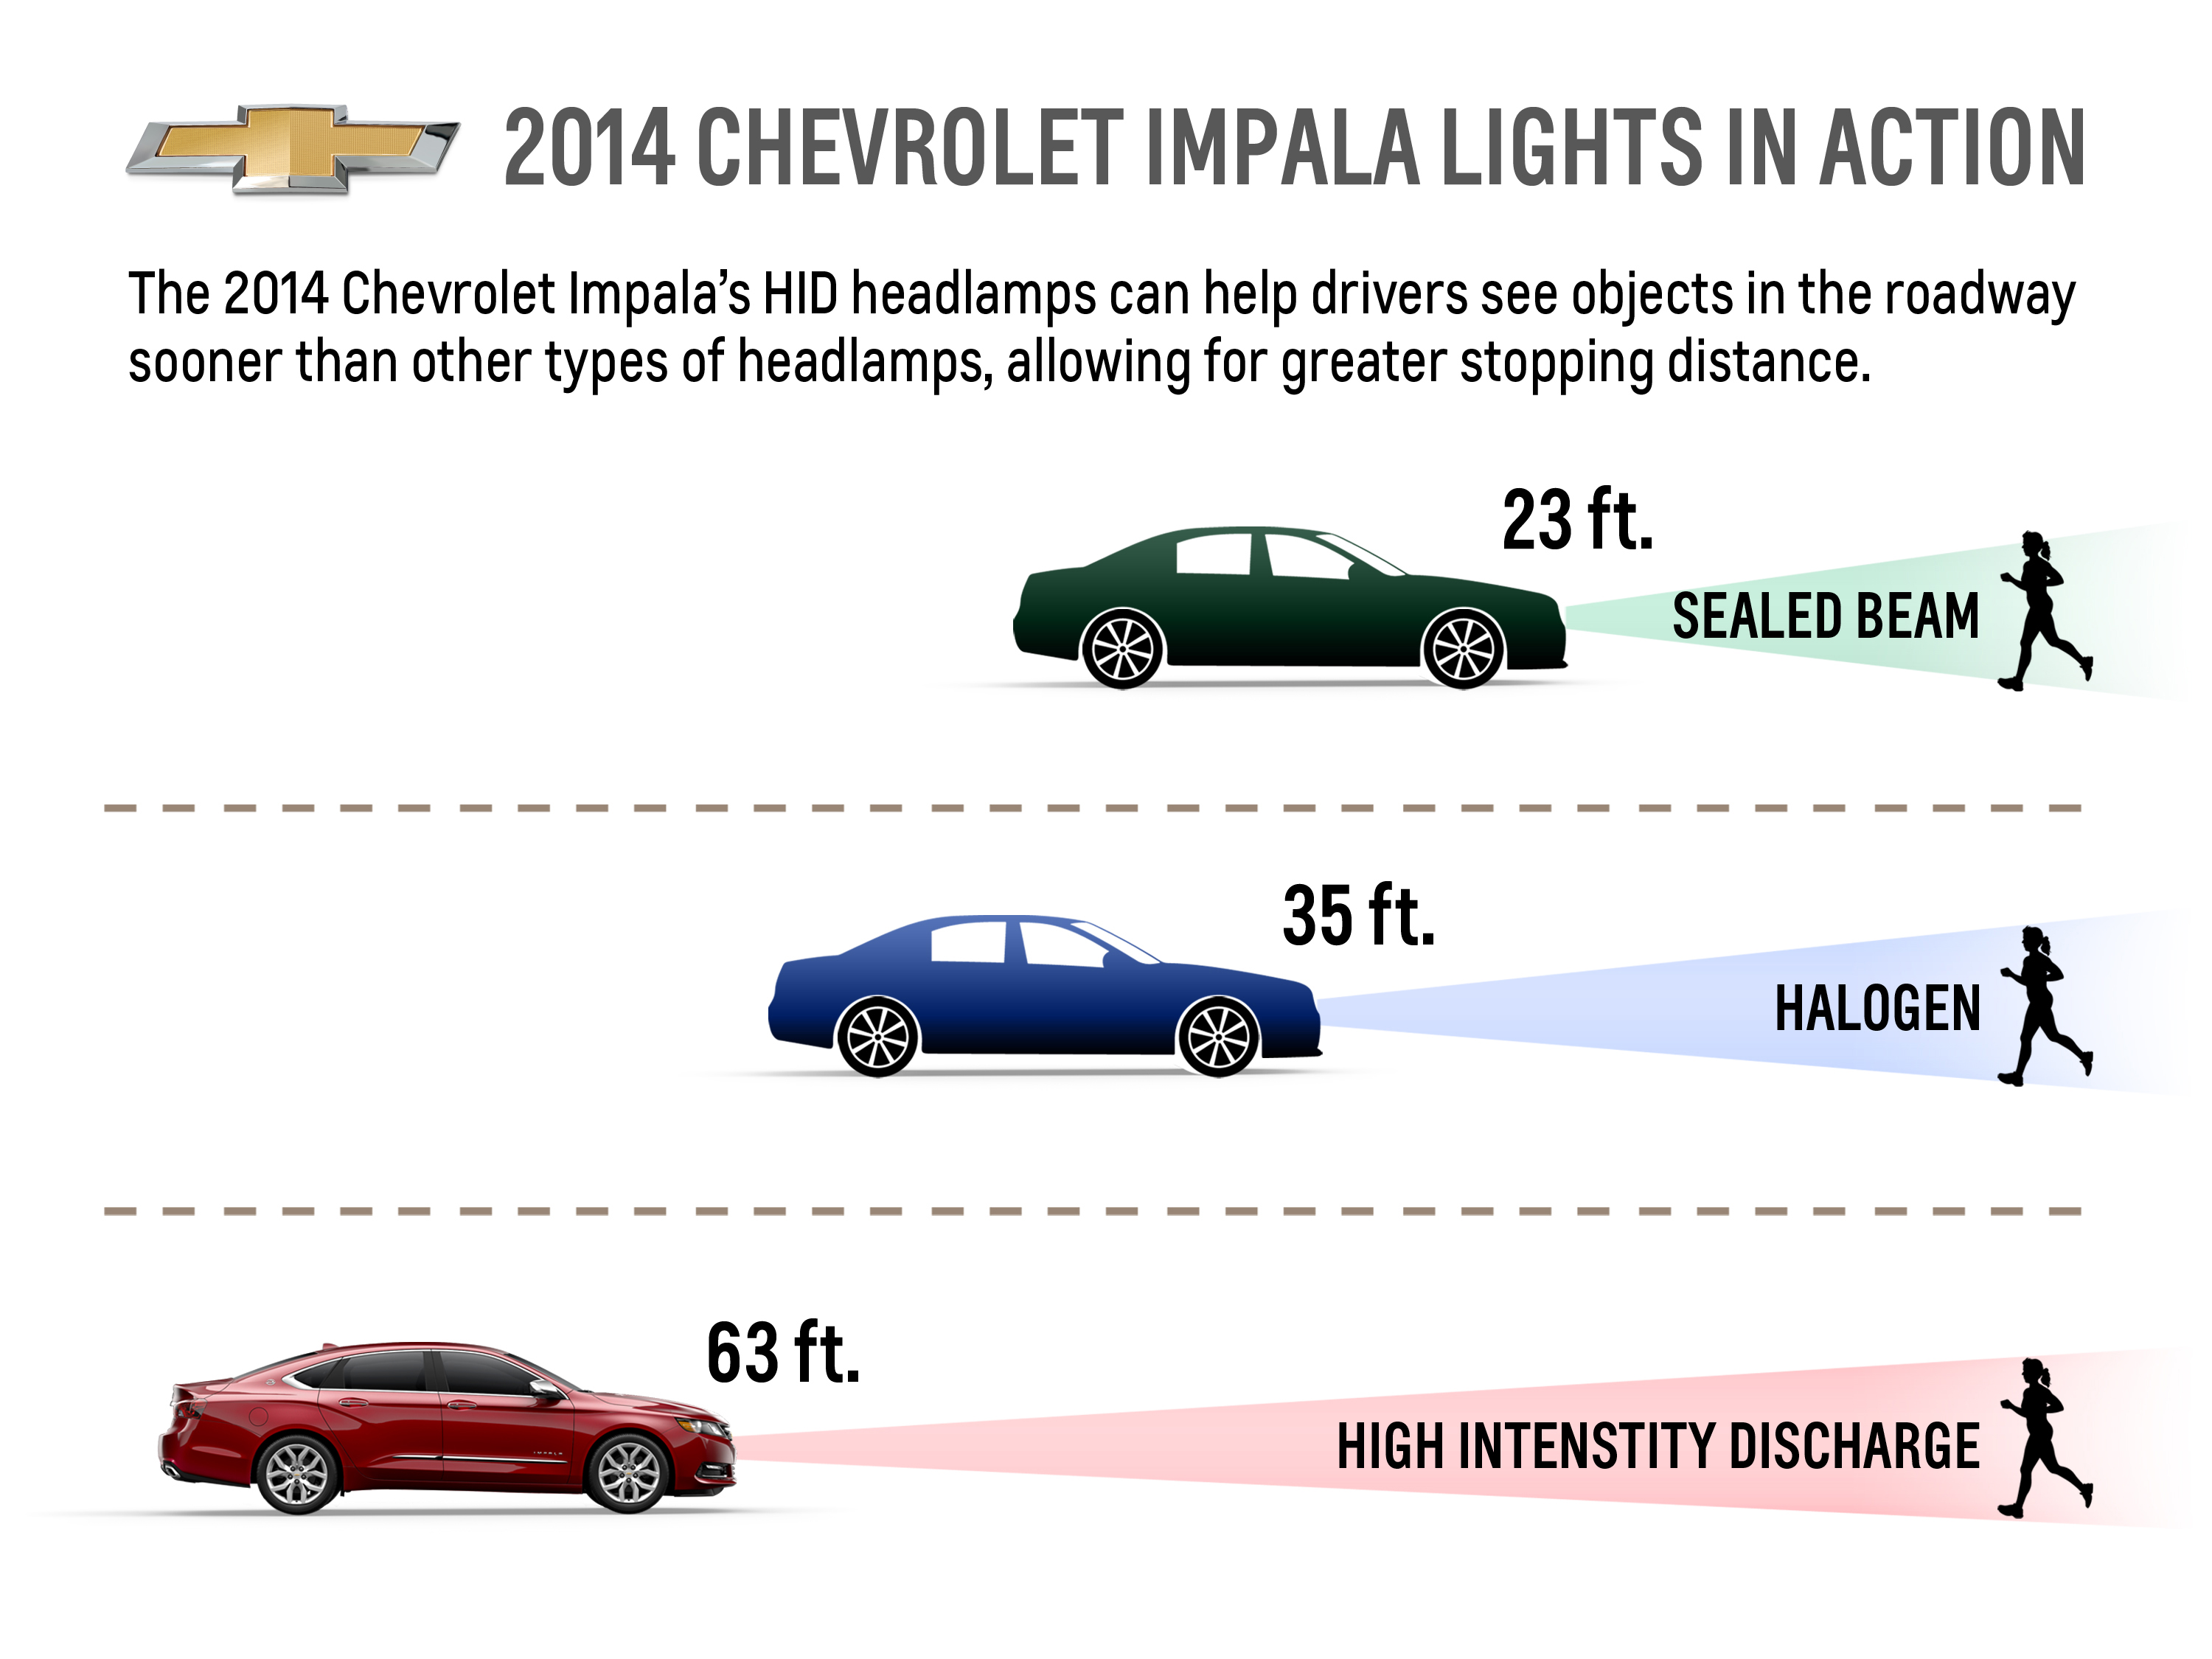 Fear of Night Driving? 2014 Chevrolet Impala Can Help